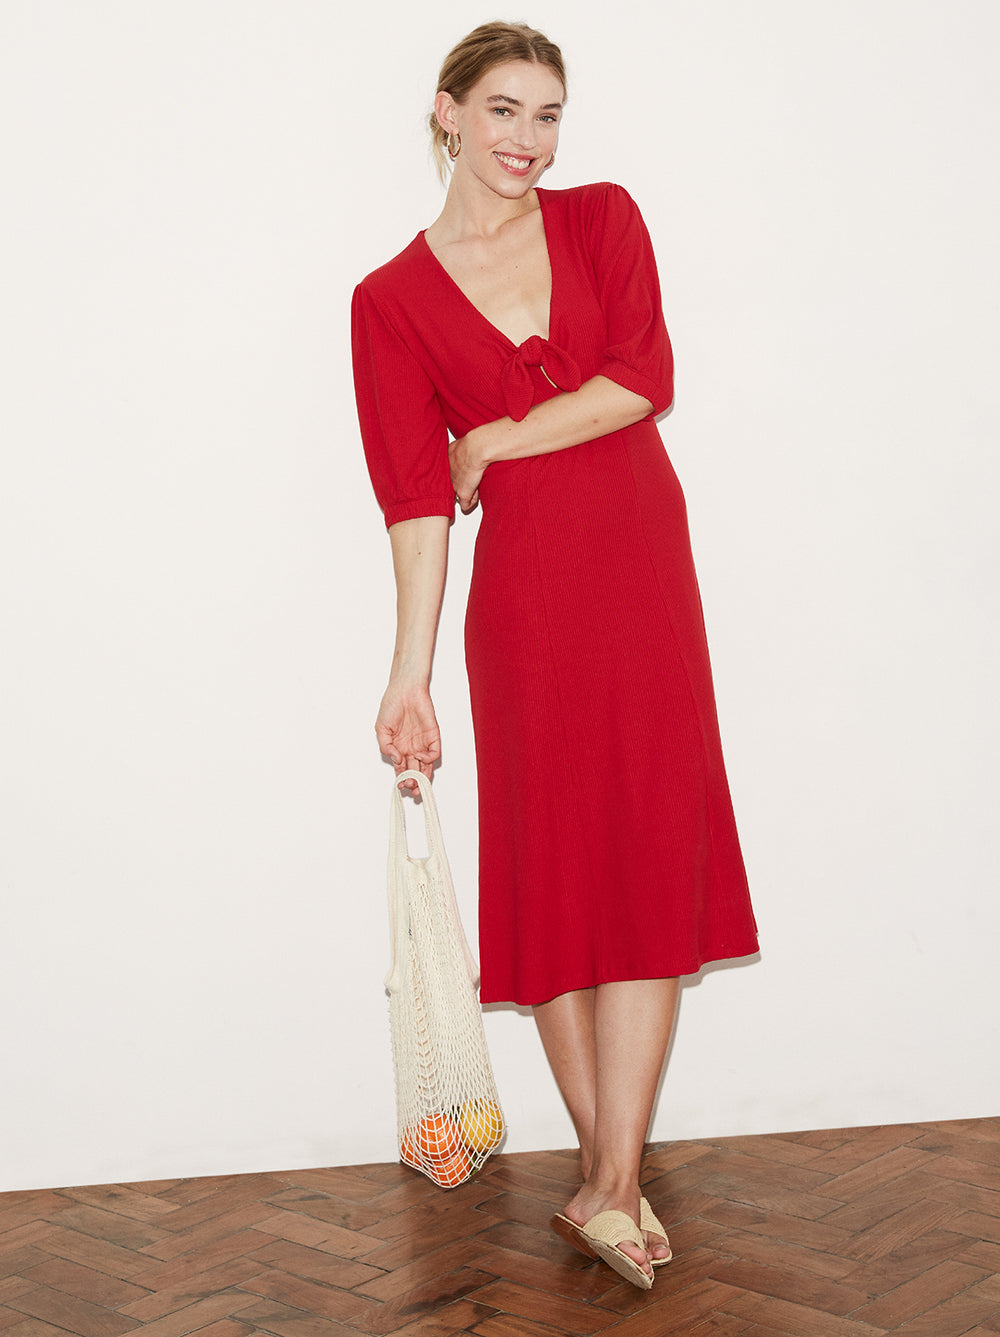 Amaris Red Tie Front Jersey Dress by KITRI Studio